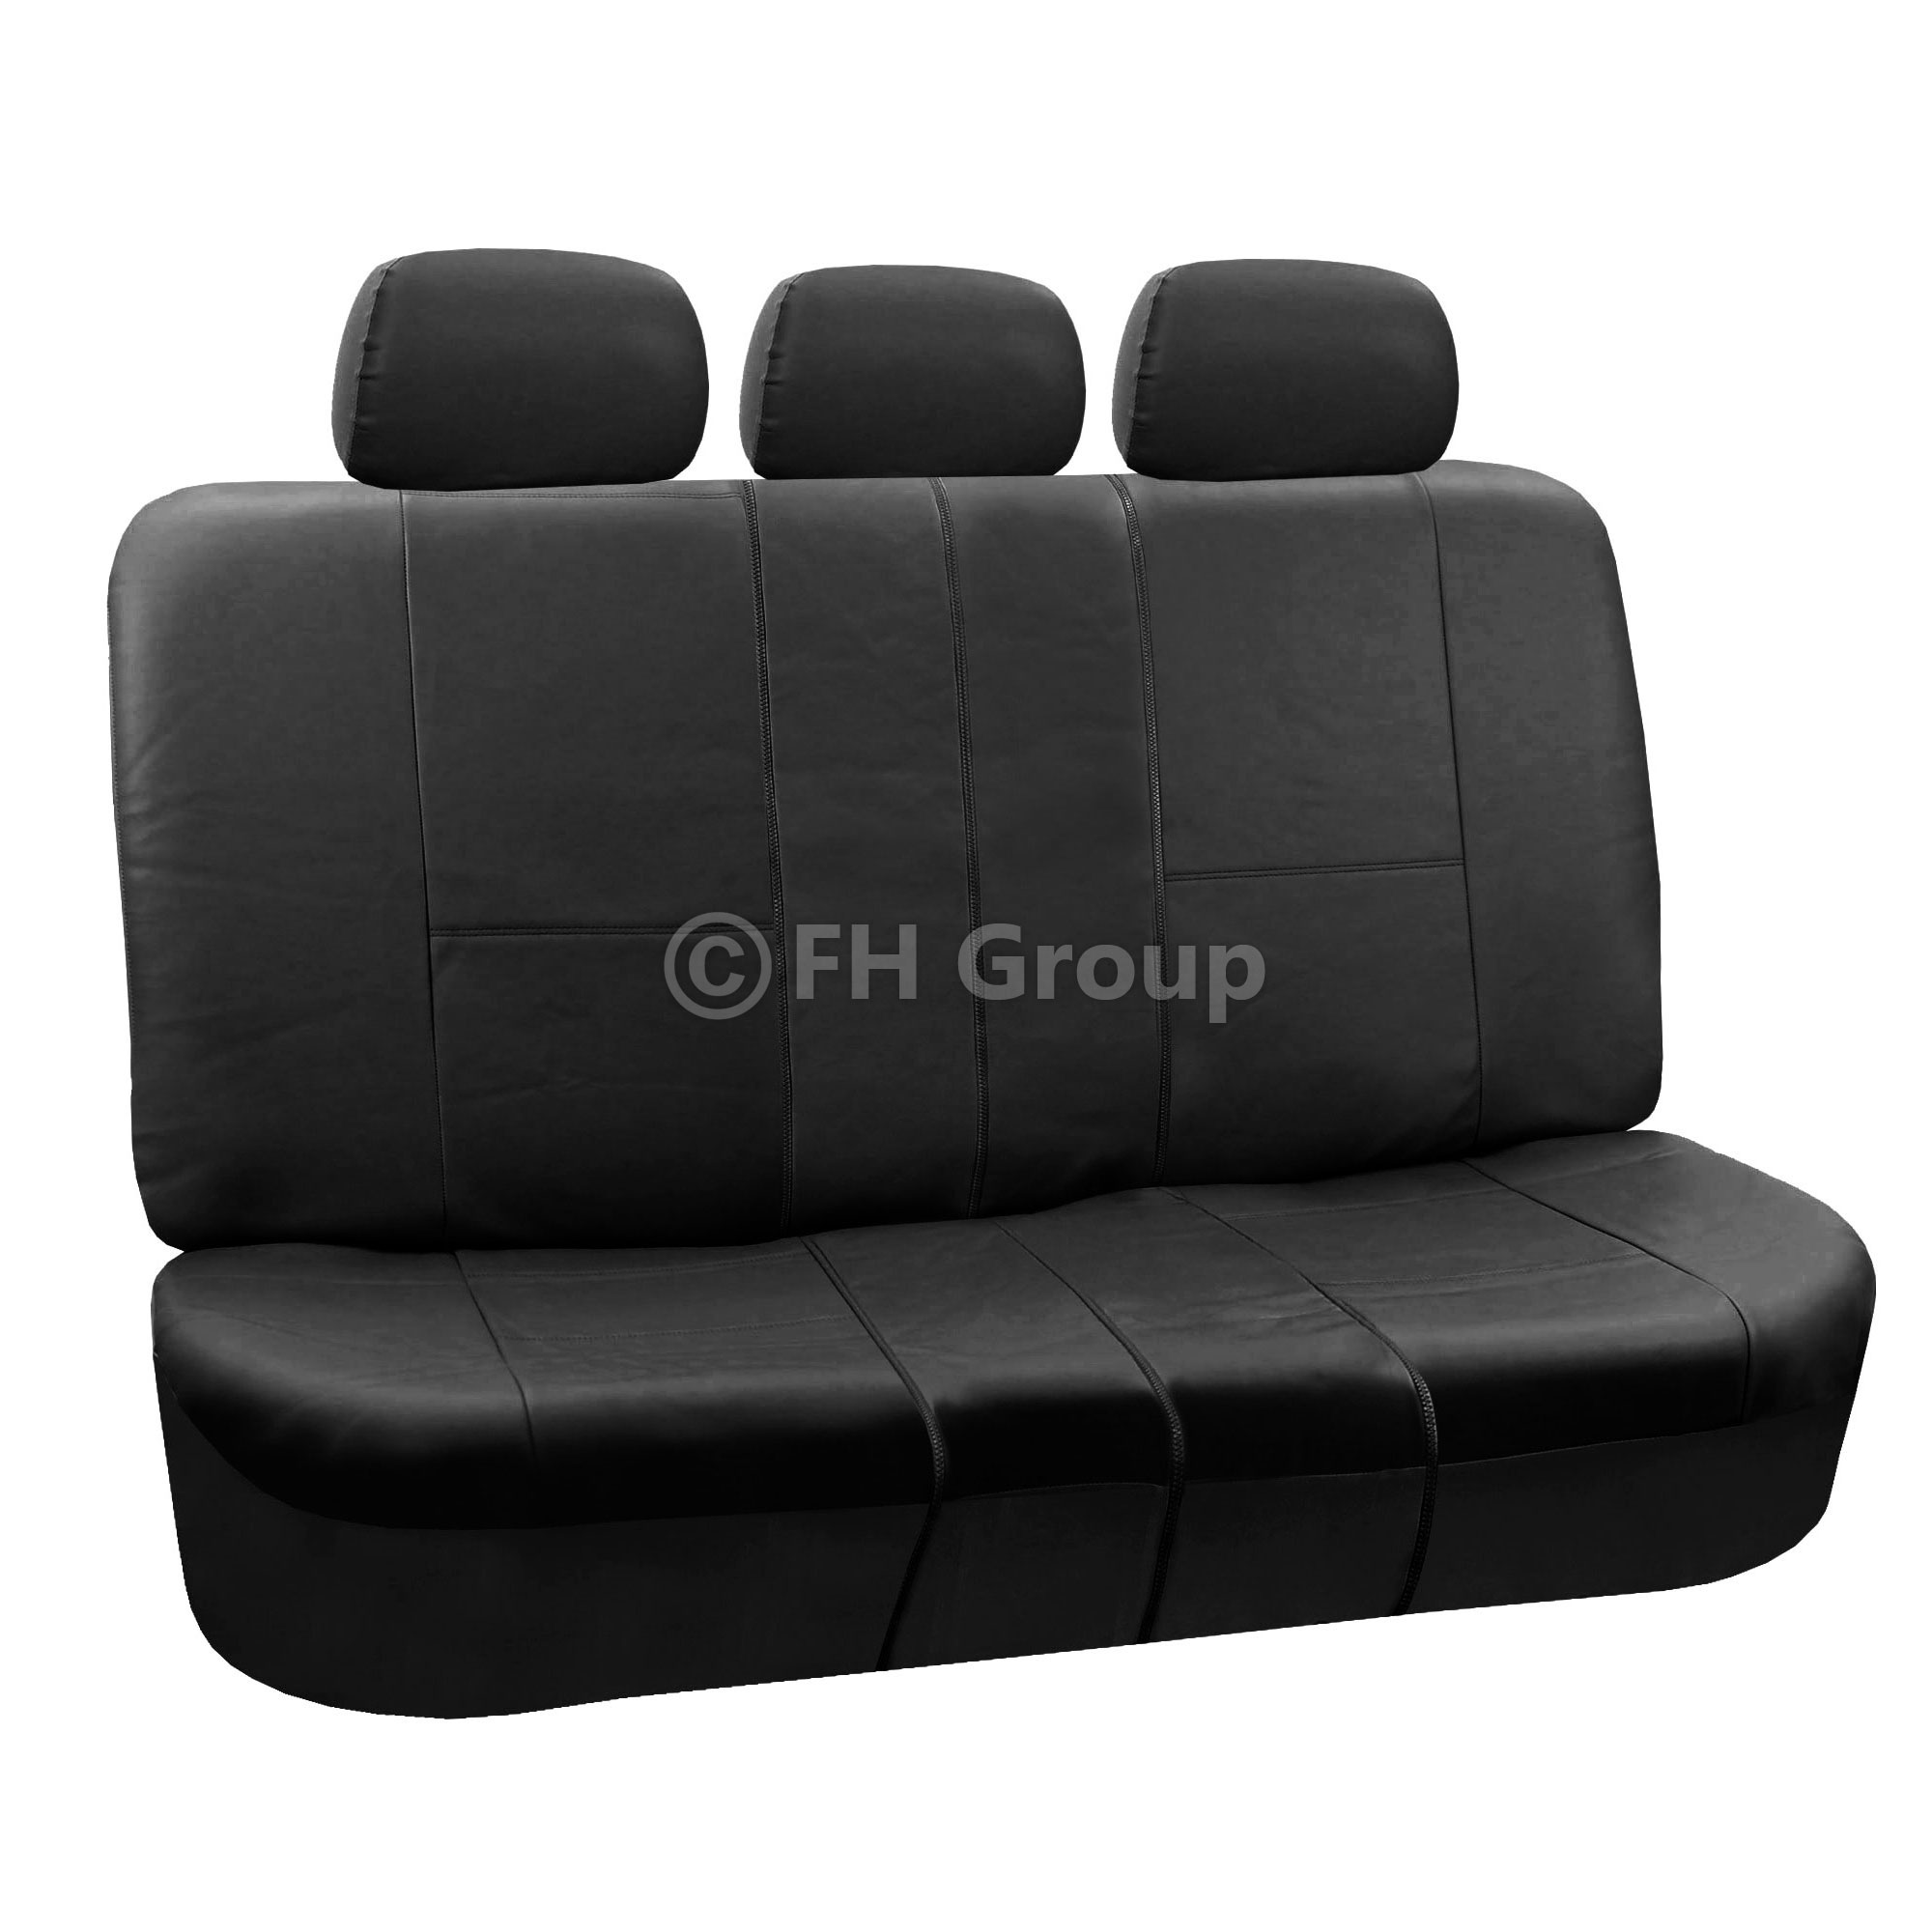 PU Leather Seat Covers For Toyota Corolla 2005 2011